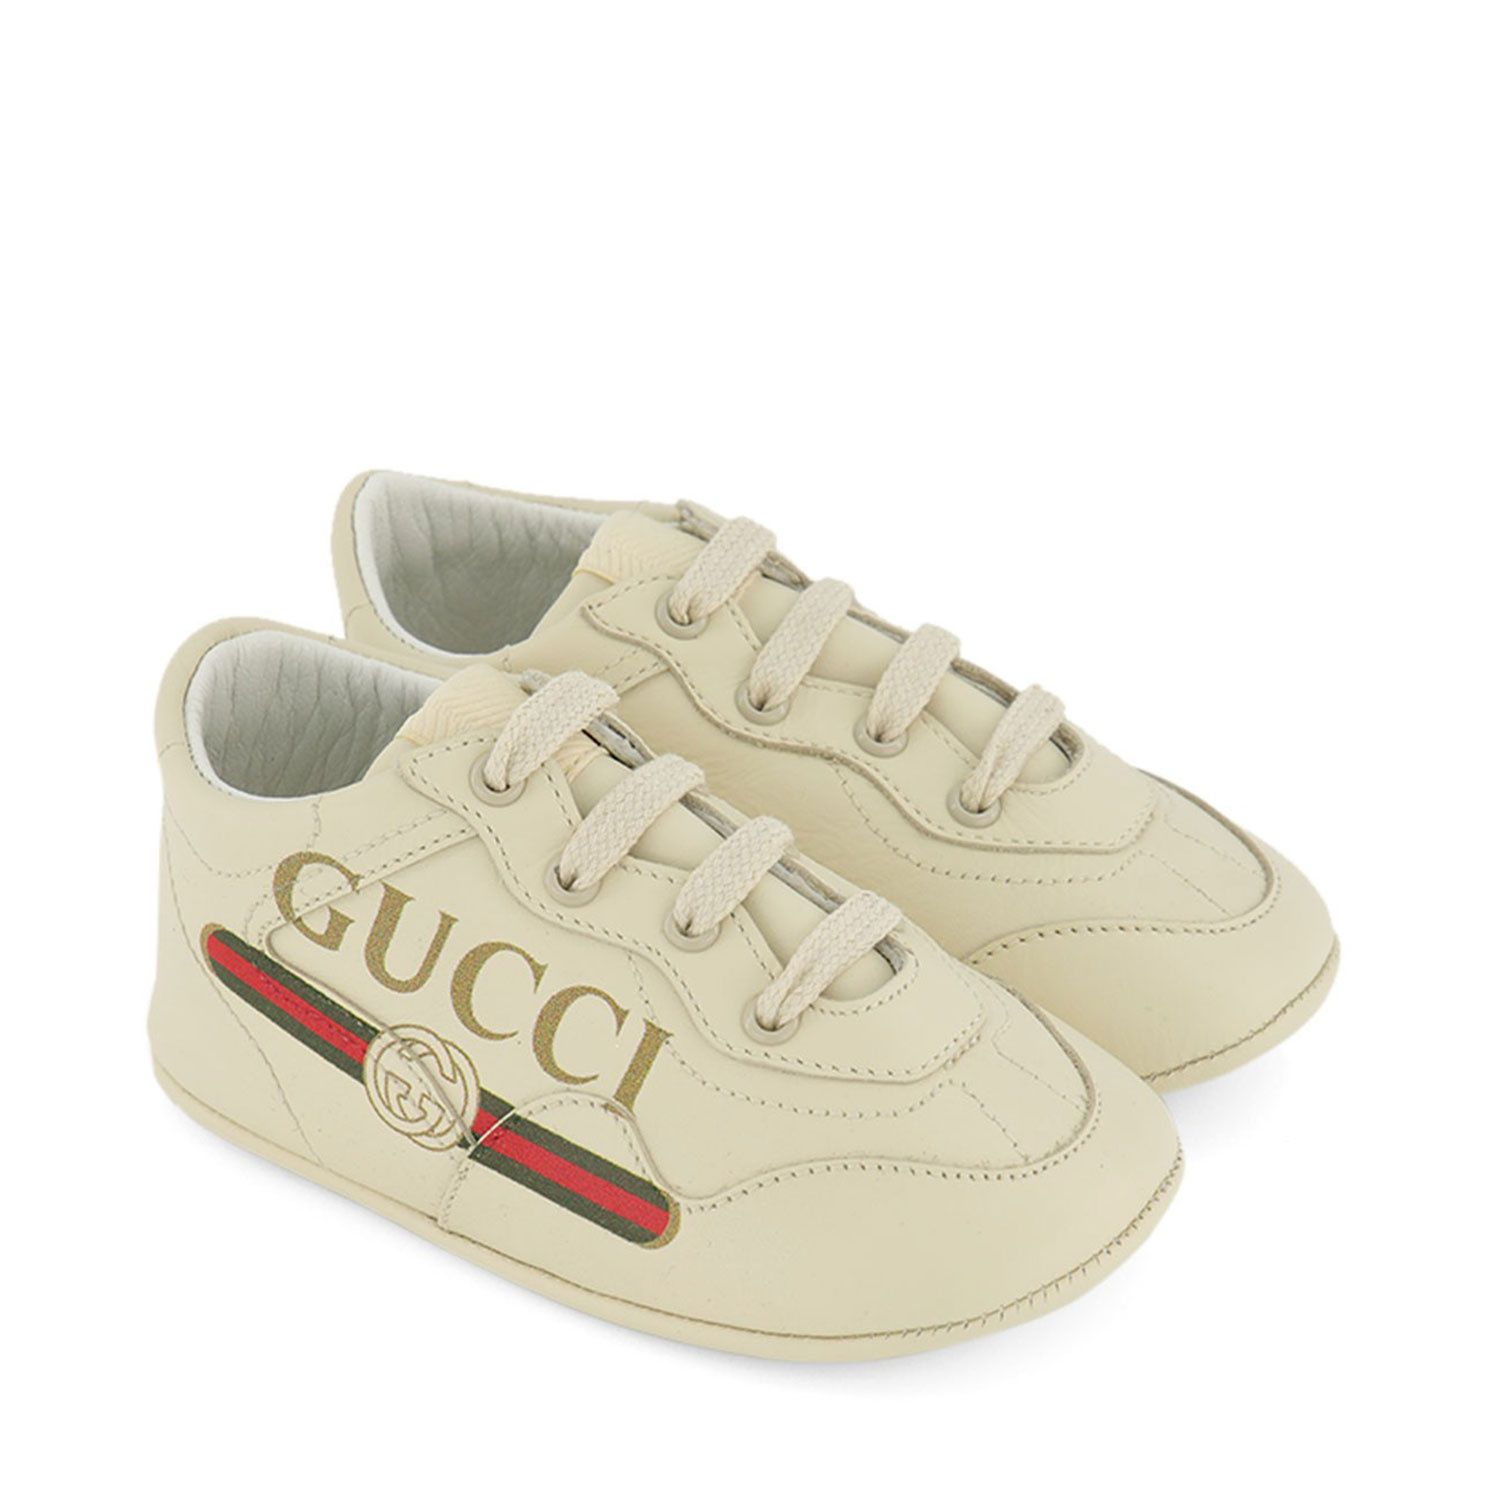 Picture of Gucci 612786 baby sneakers off white